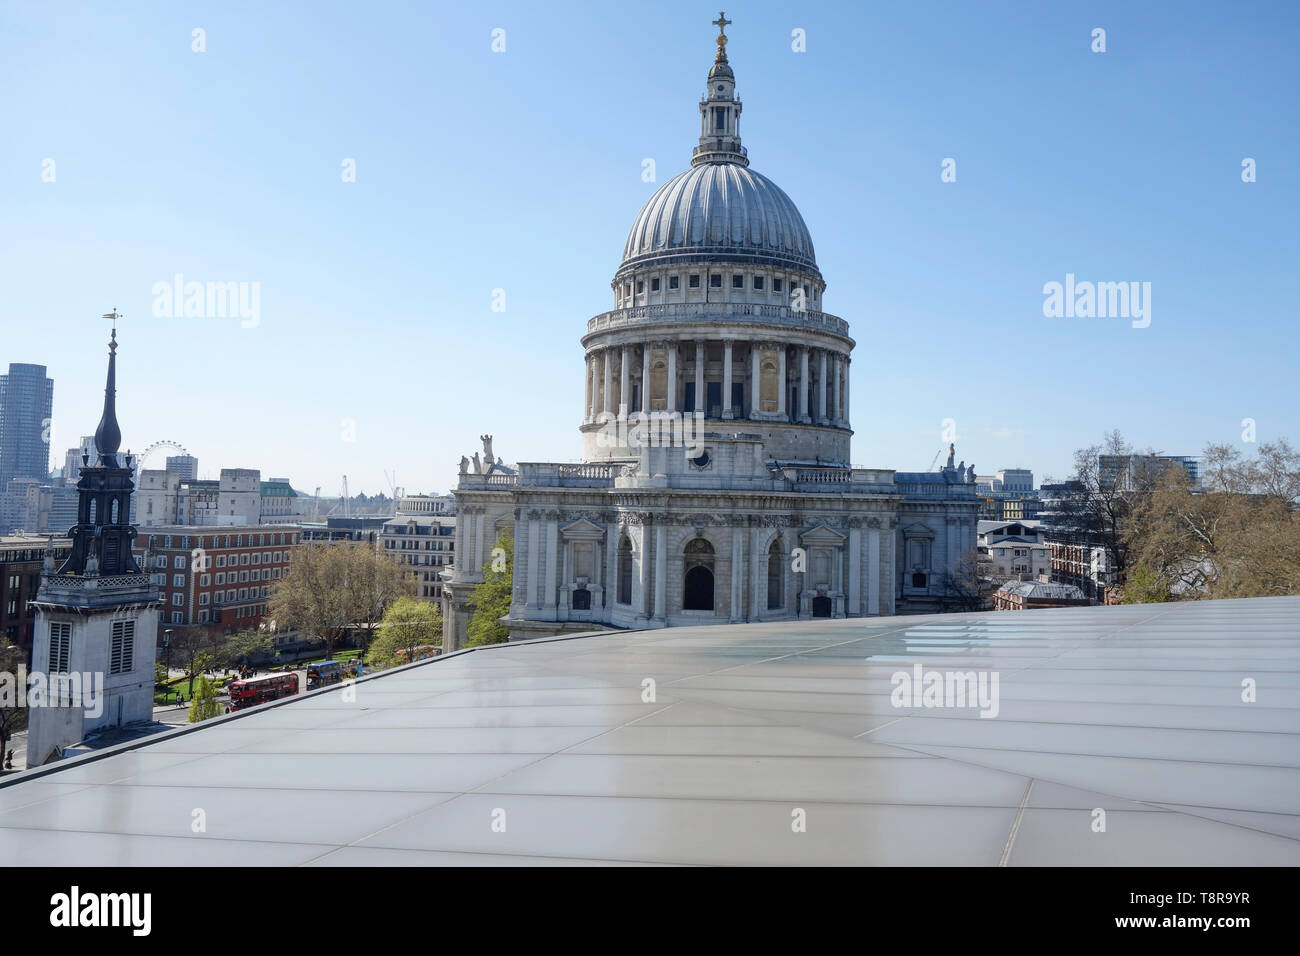 St Paul's Cathedral, London, UK. Stock Photo